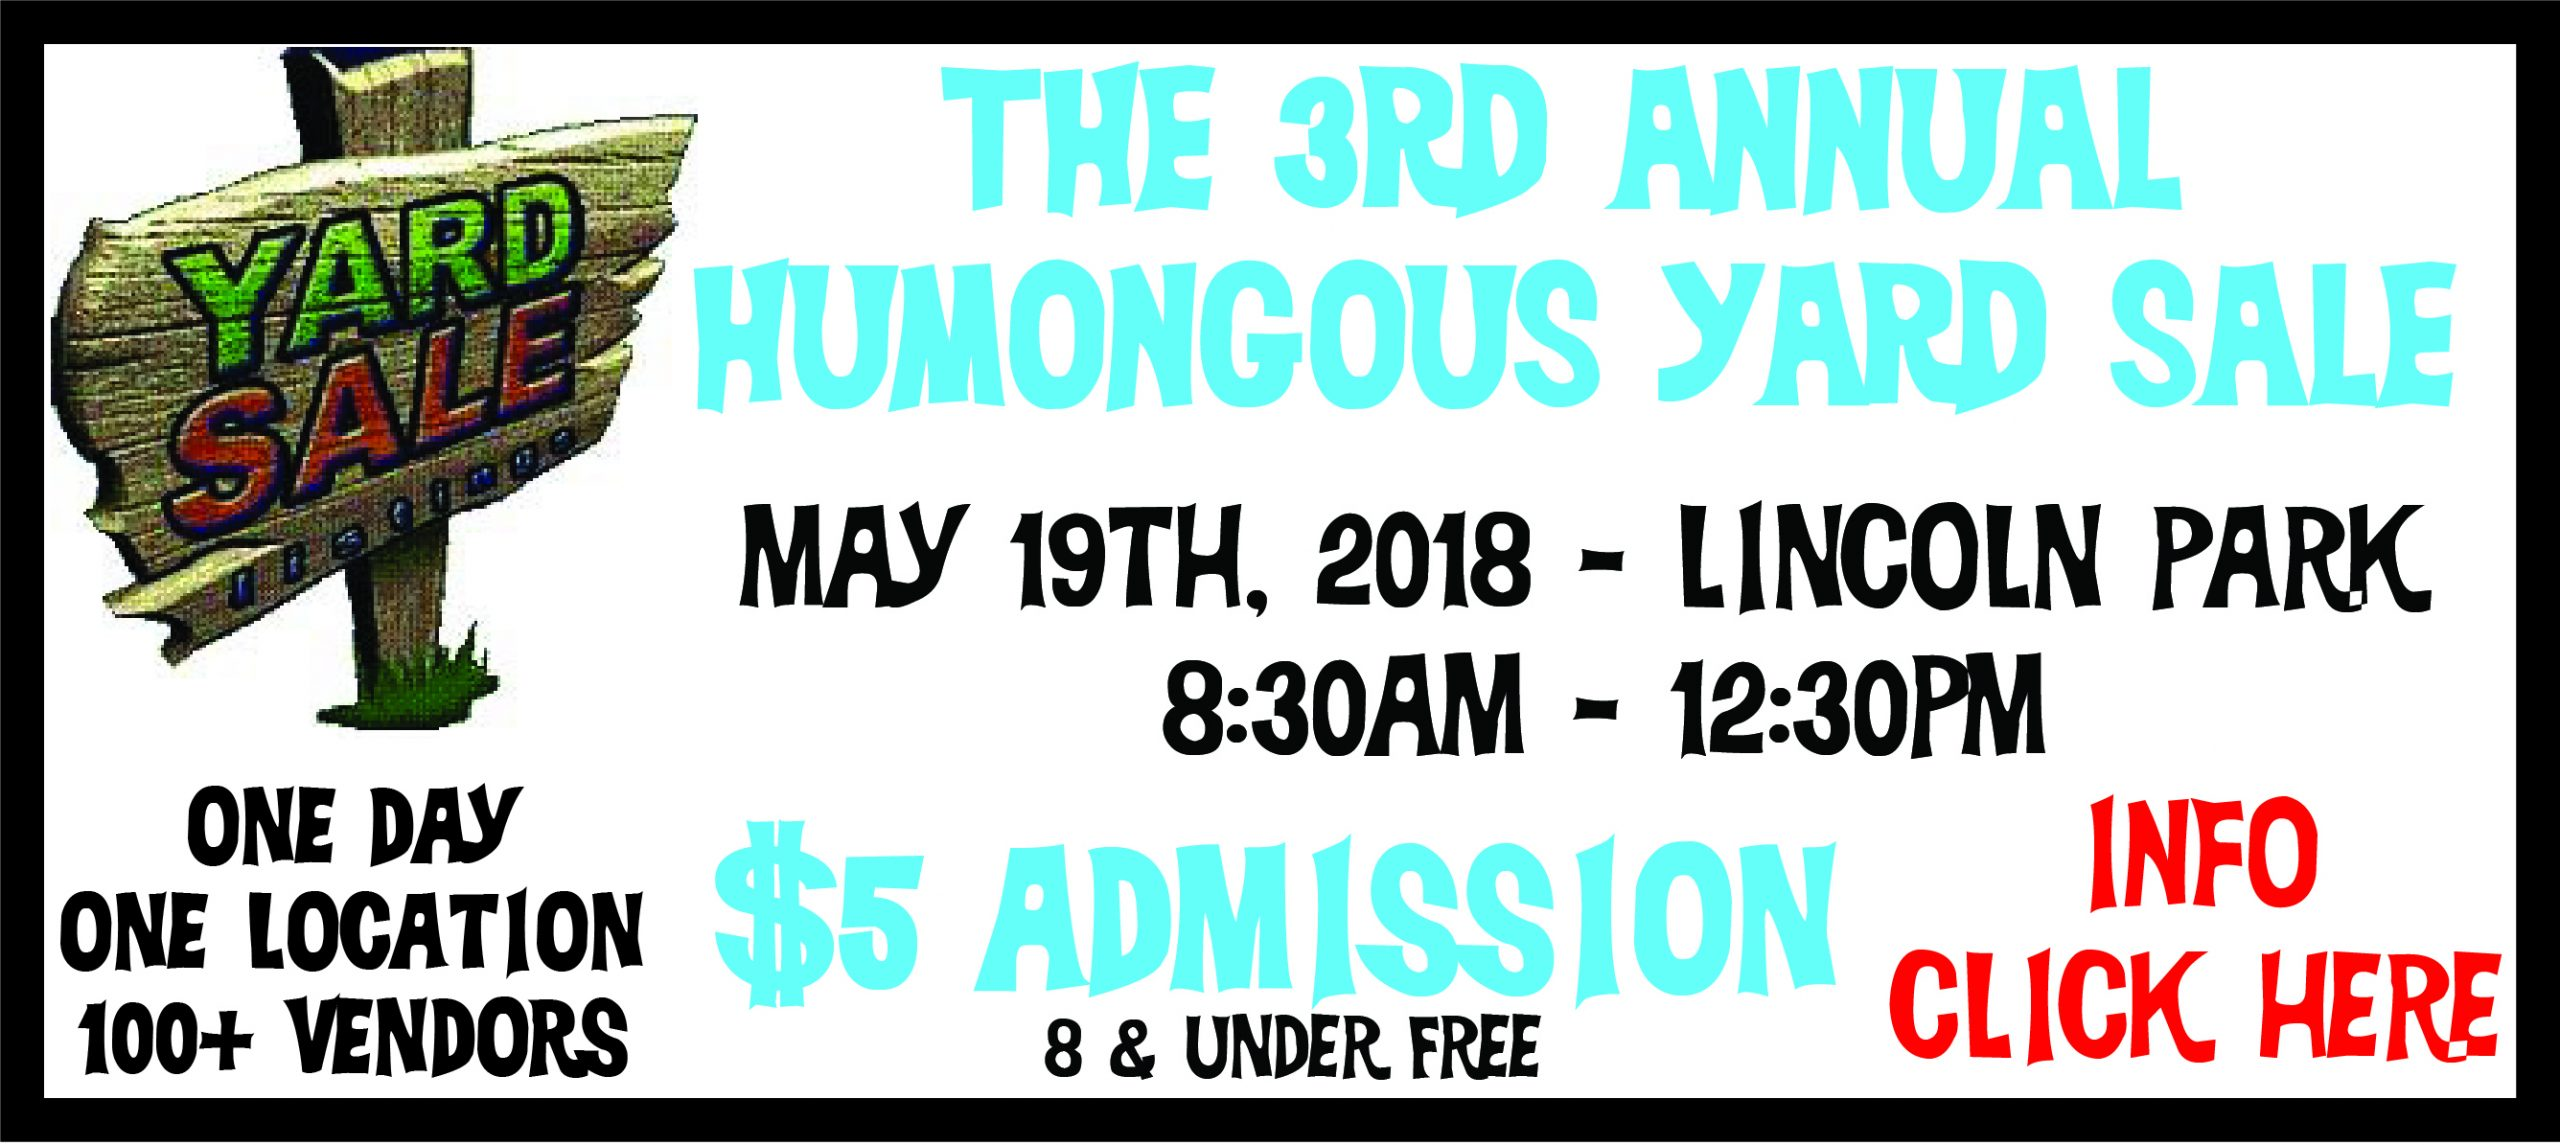 Feature: http://www.957themonkey.com/syn/820/4410/humongous-yard-sale/